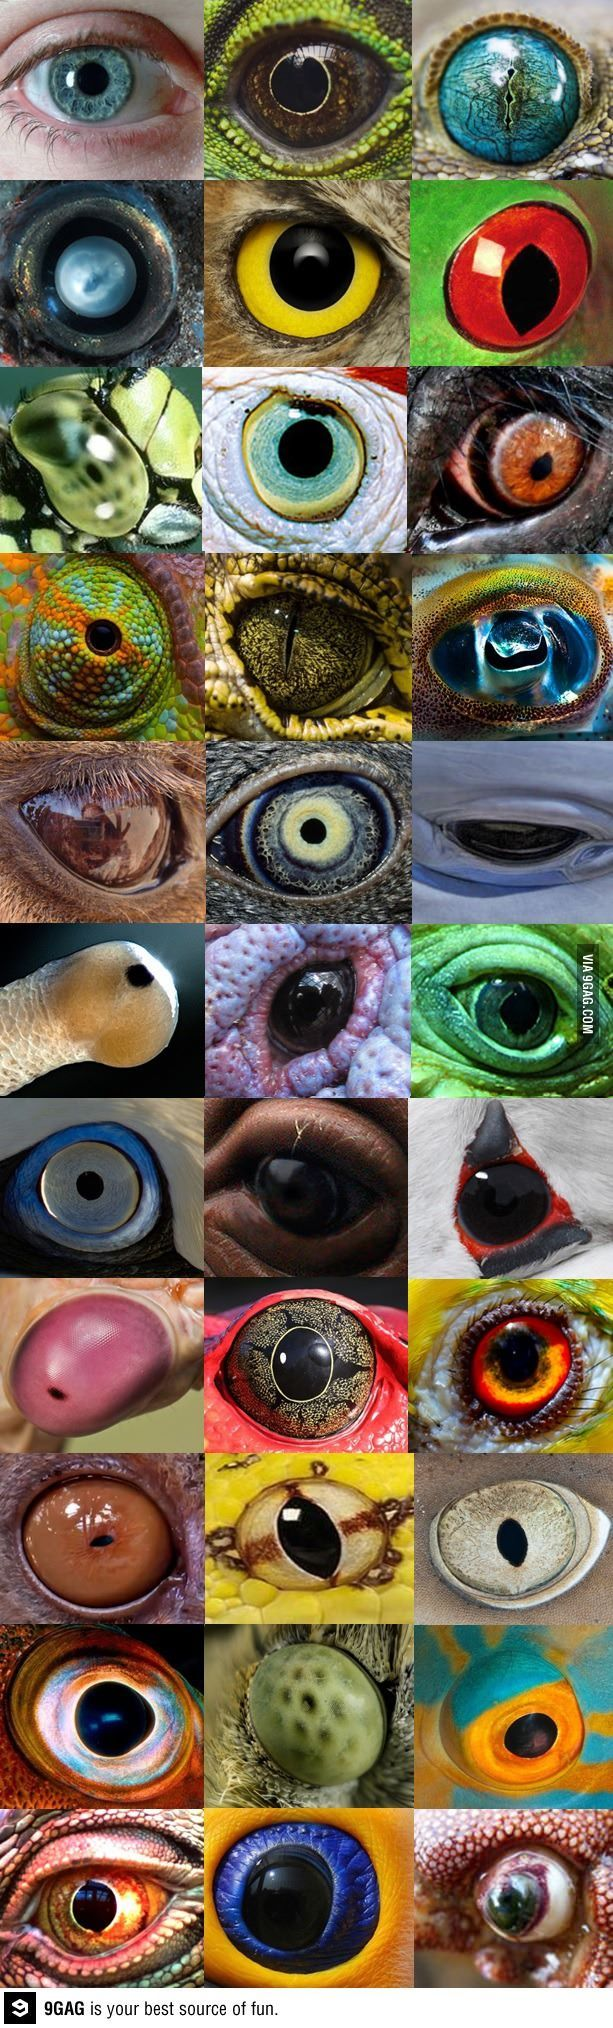 Colorful different eyes of all kinds of animals, lizards, fish, birds, humans and more. I think one is a dolphins. Please also visit www.JustForYouPropheticArt.com for colorful inspirational Prophetic Art and stories. Thank you so much! Blessings!